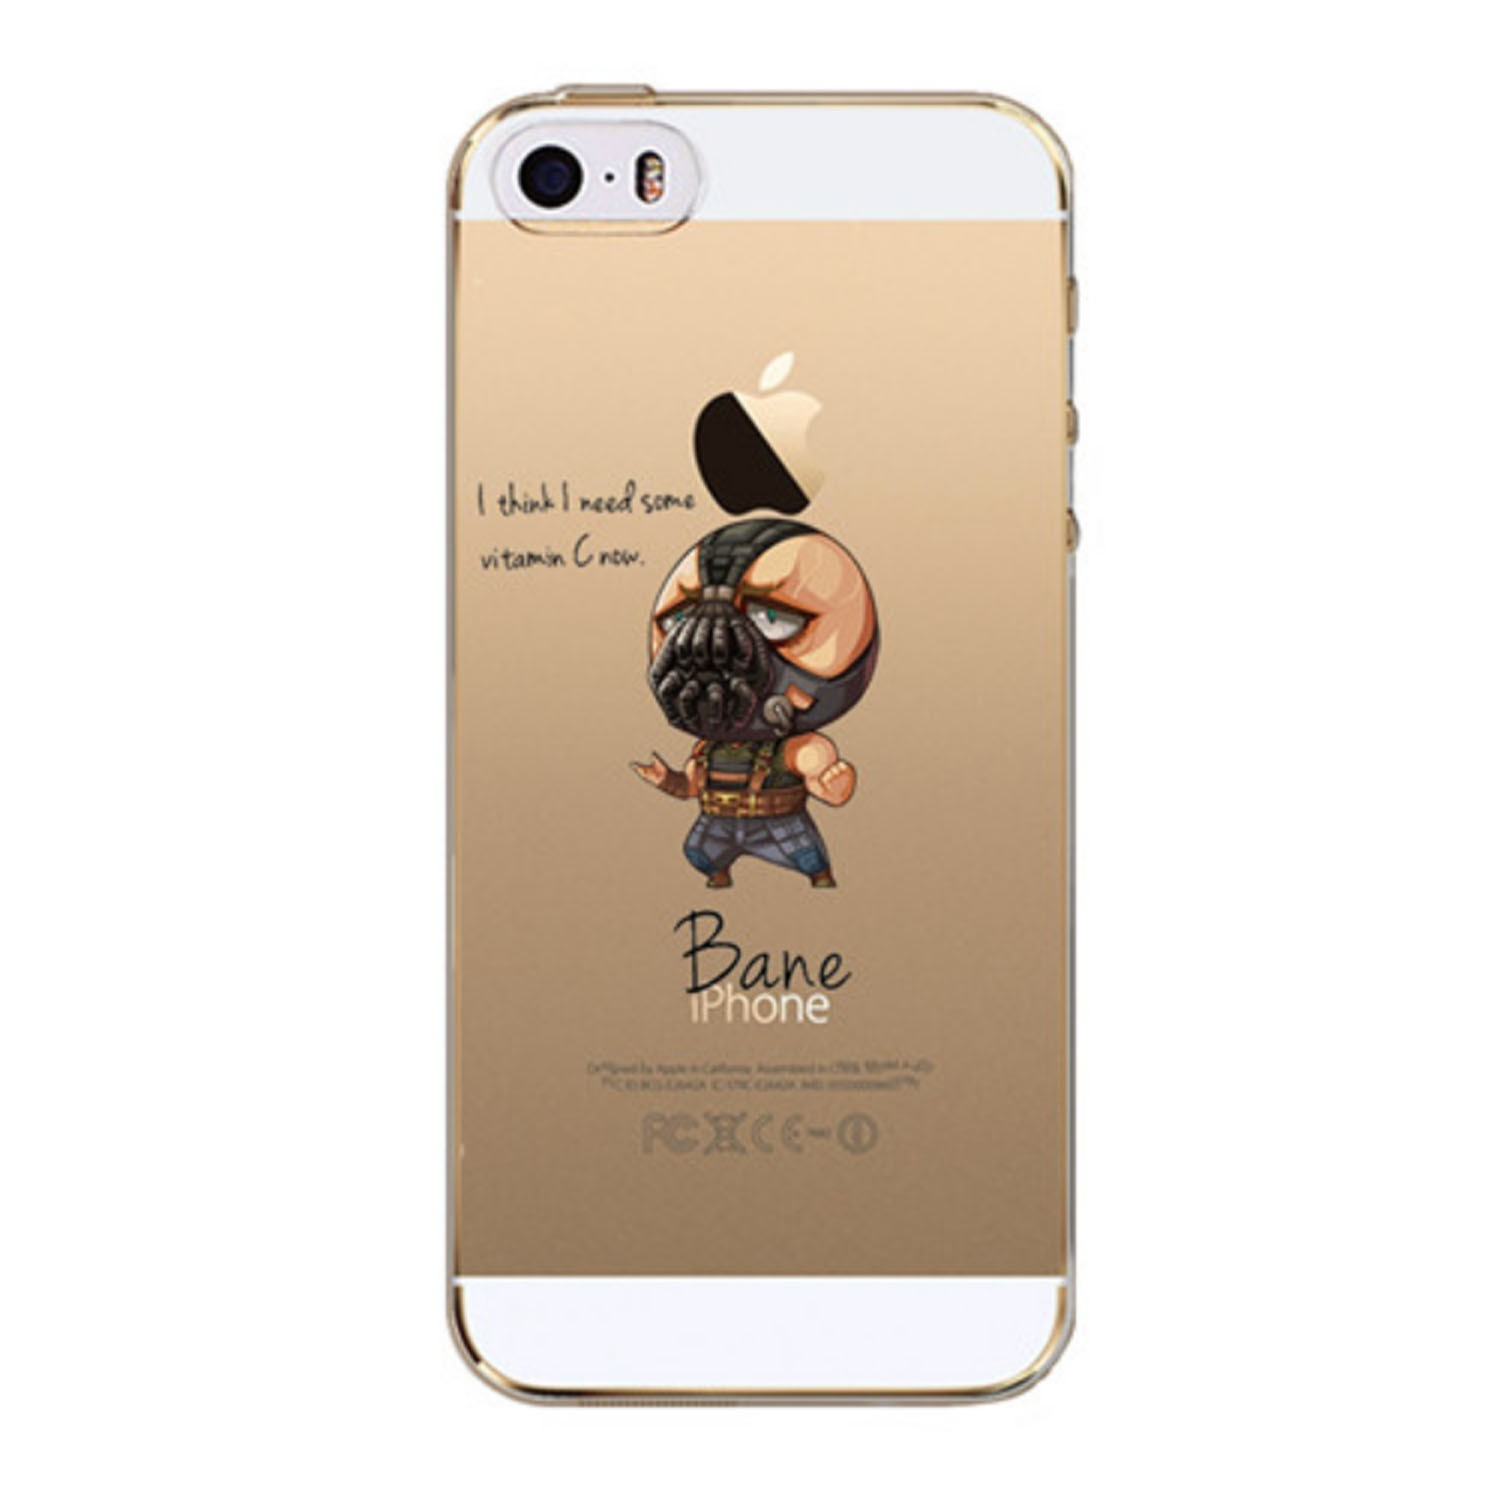 Kritzel Case iPhone SE - Bane